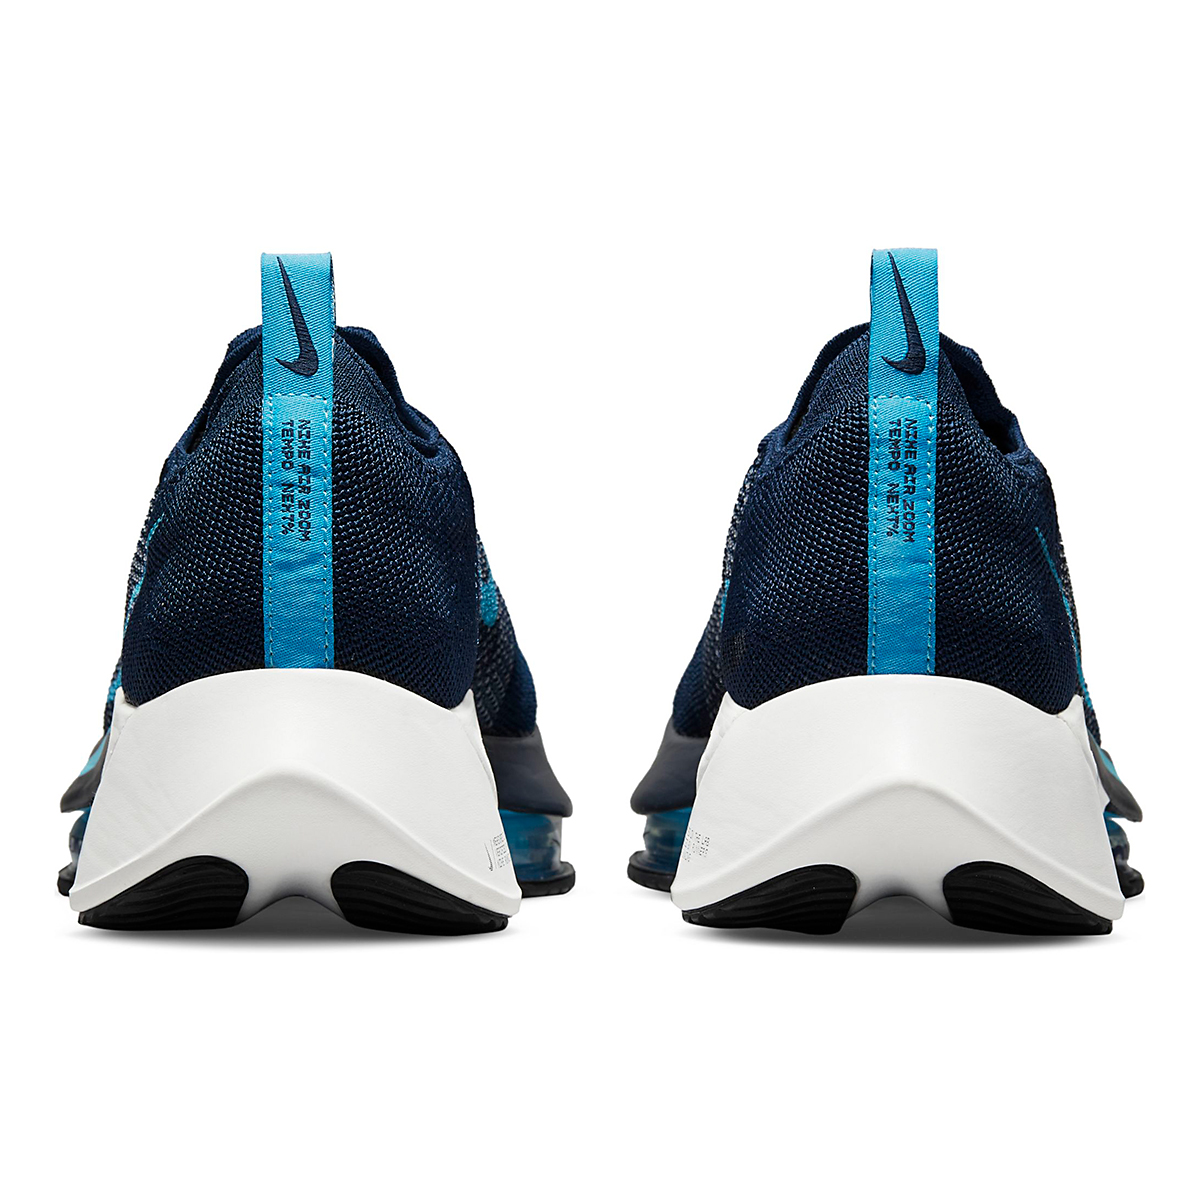 Men's Nike Air Zoom Tempo Next% Running Shoe - Color: College Navy/Chlorine Blue/Platinum Tint - Size: 7.5 - Width: Regular, College Navy/Chlorine Blue/Platinum Tint, large, image 5